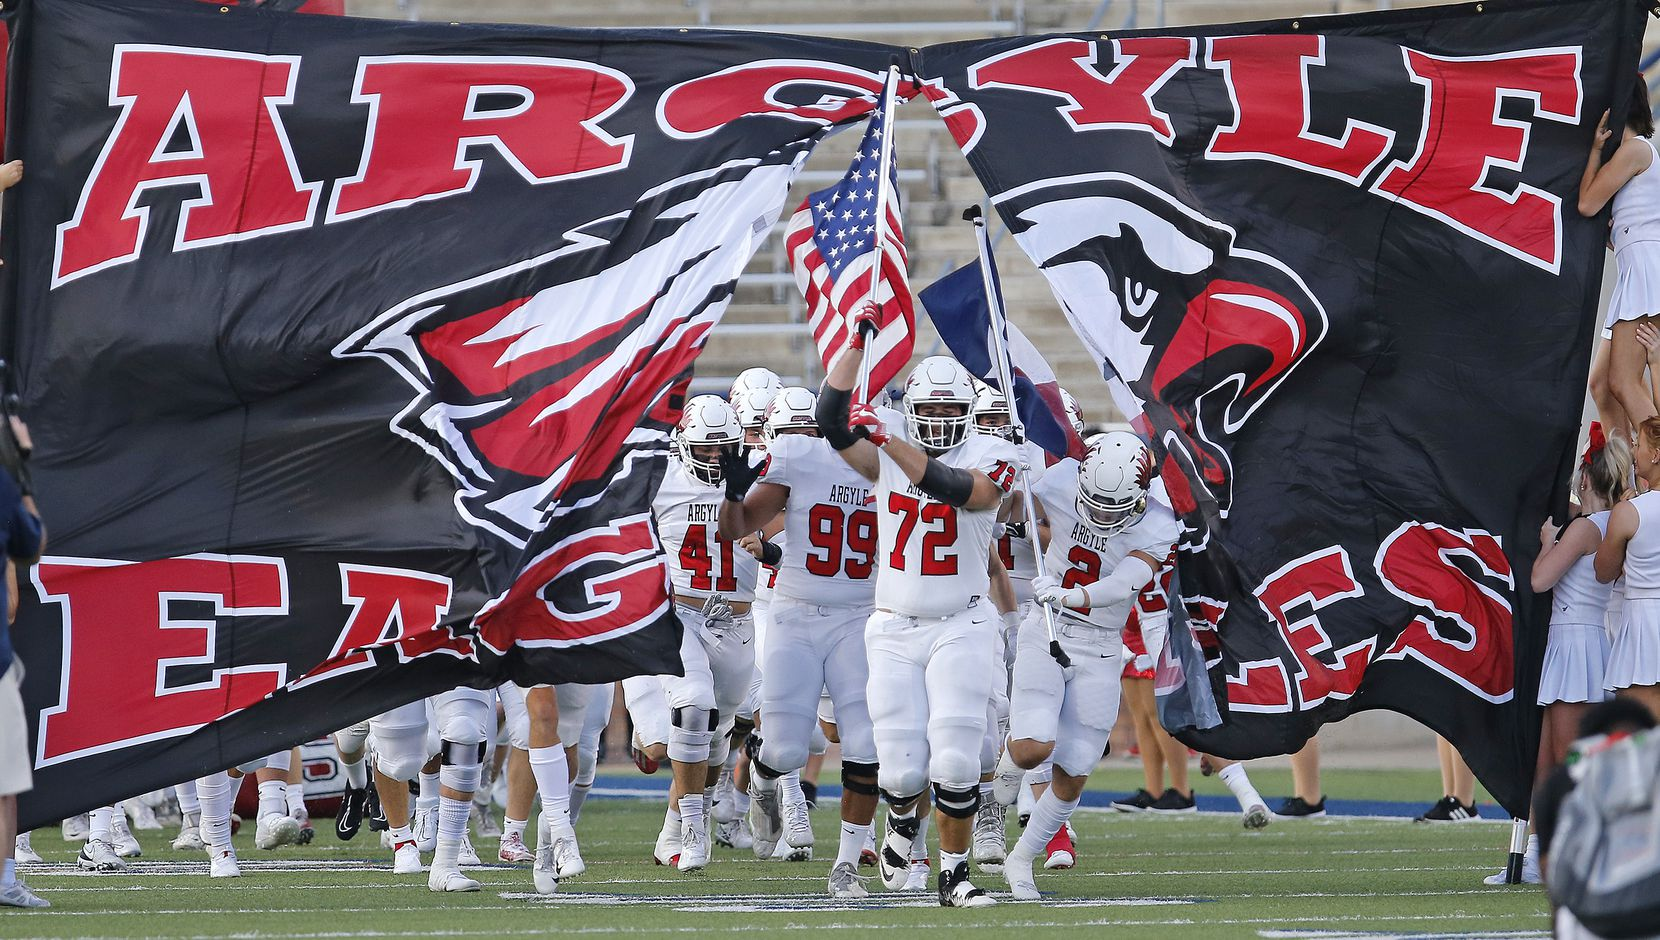 The Argyle High School football team takes the field before kickoff as they hosted Nolan Catholic High School at Eagle Stadium in Allen on Saturday evening, August 28, 2021. (Stewart F. House/Special Contributor)